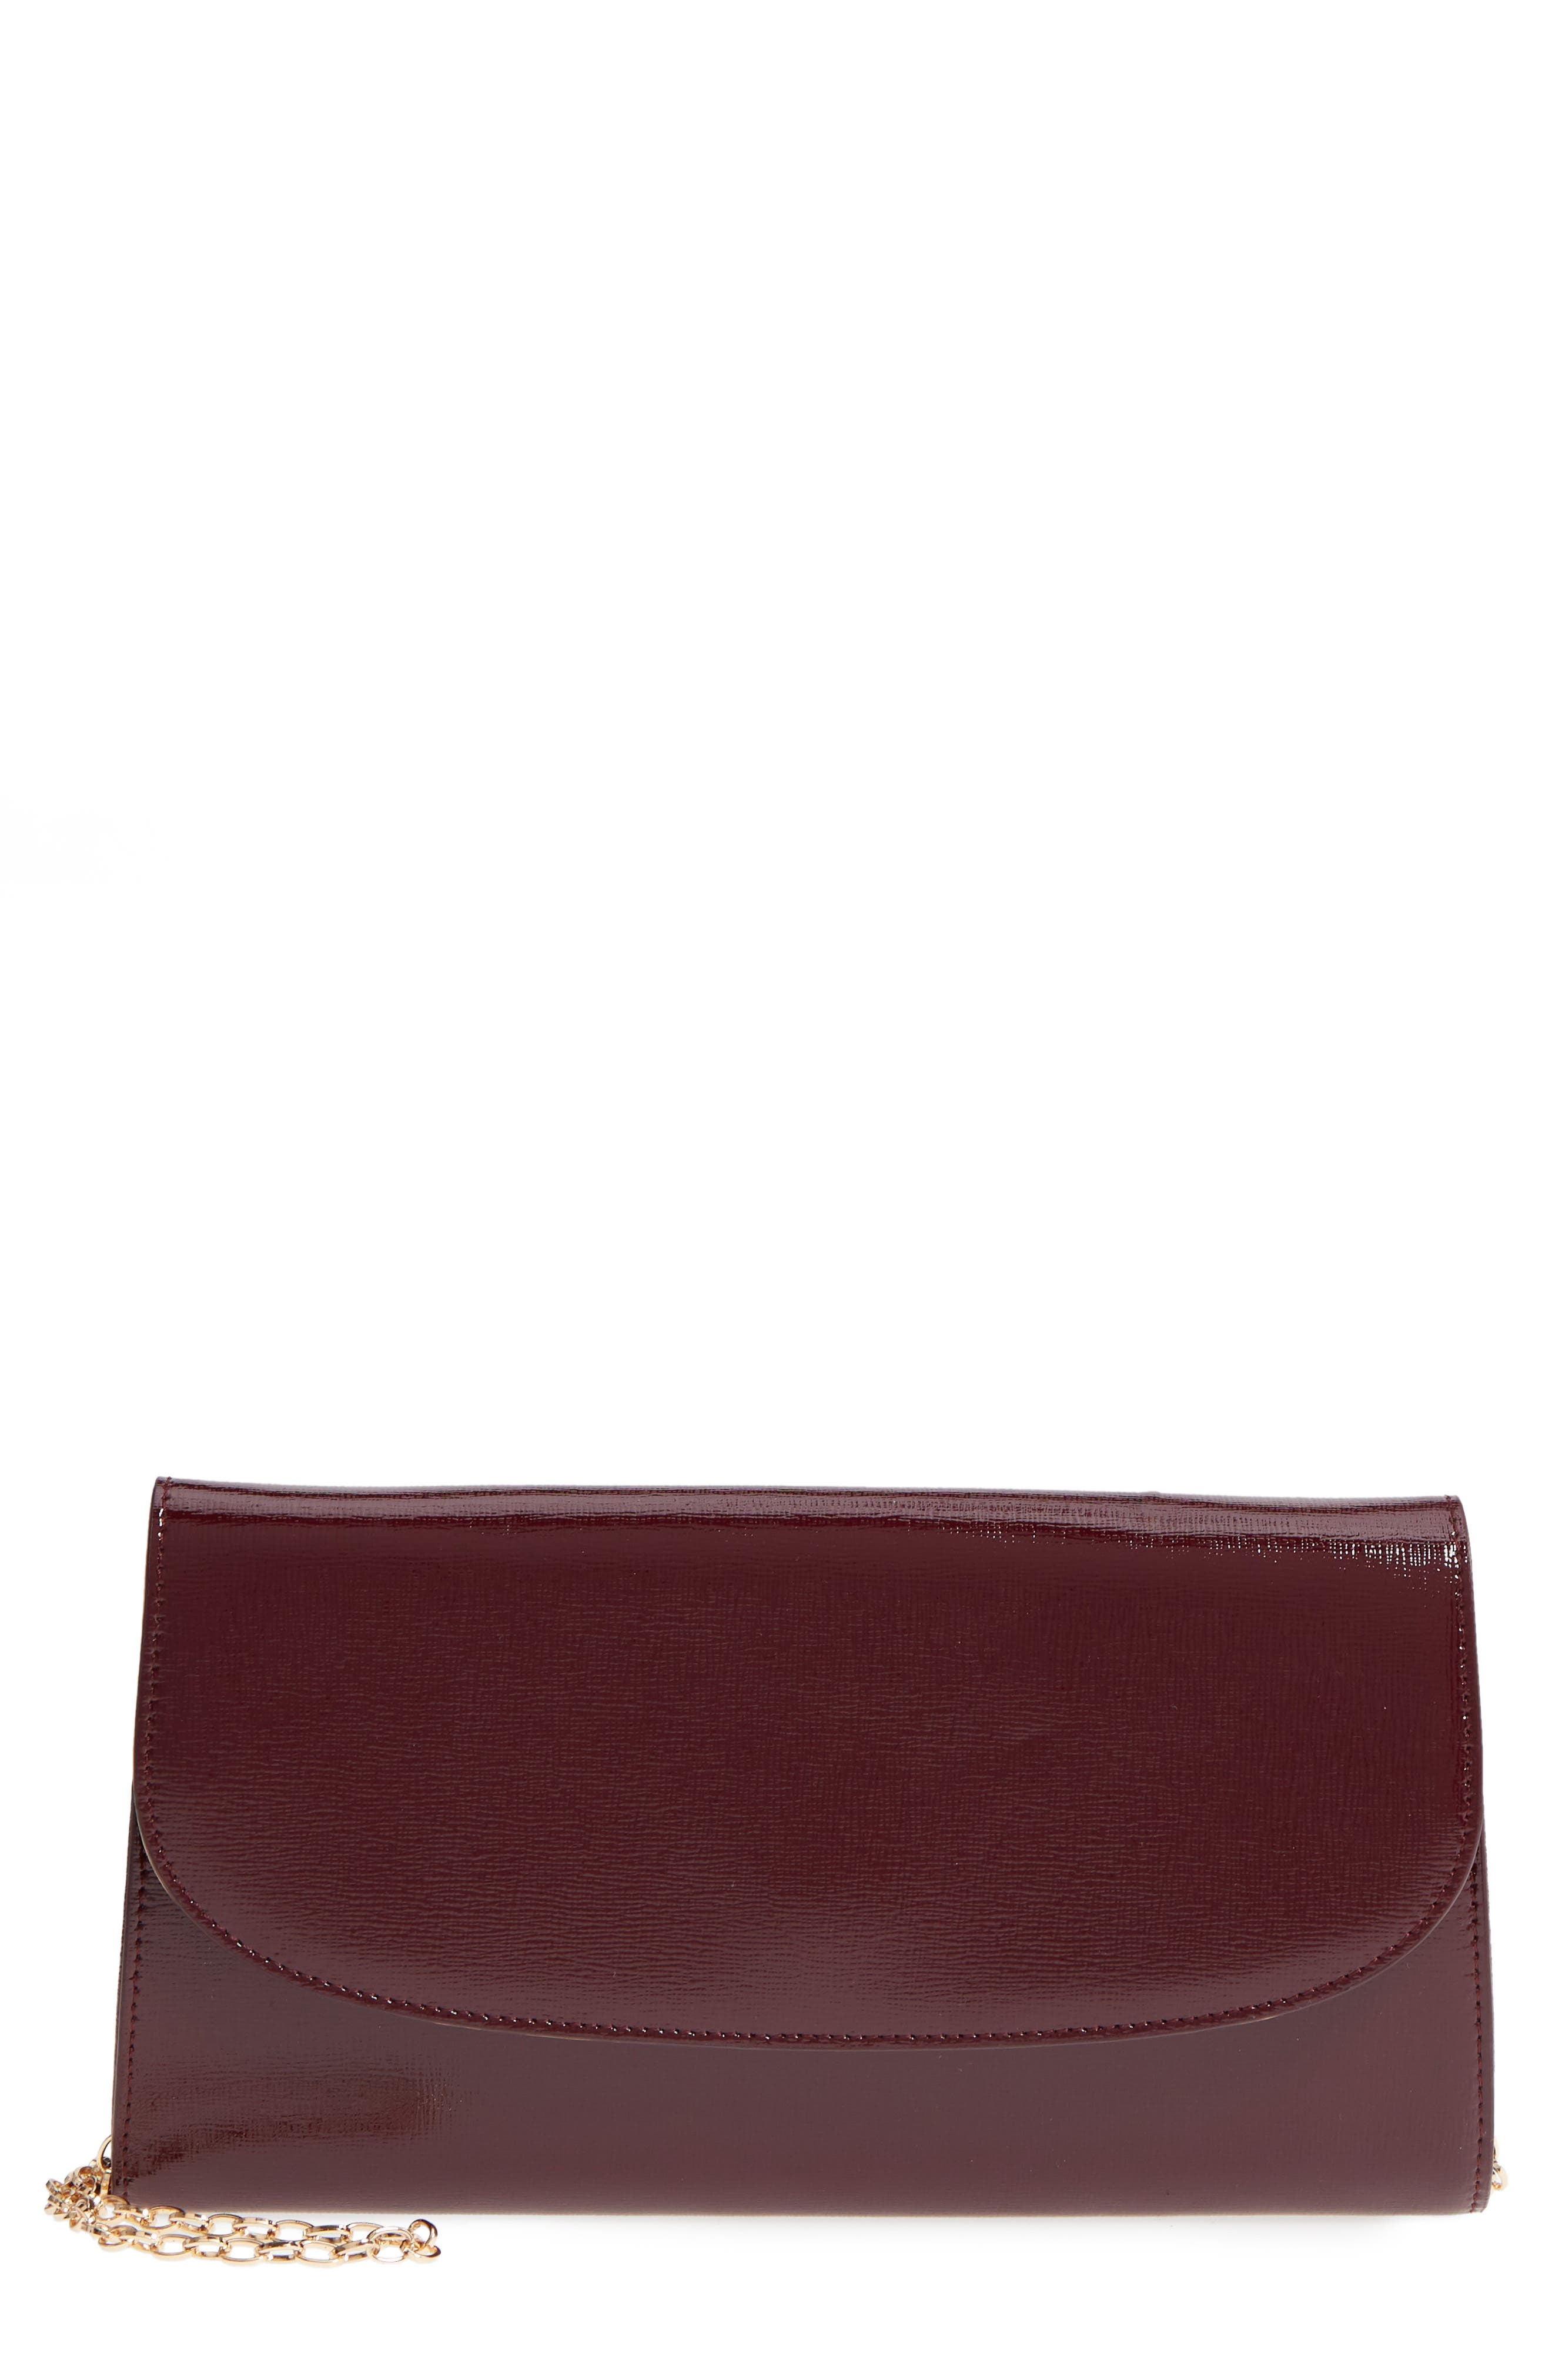 NORDSTROM Leather Clutch, Main, color, BURGUNDY ROYALE